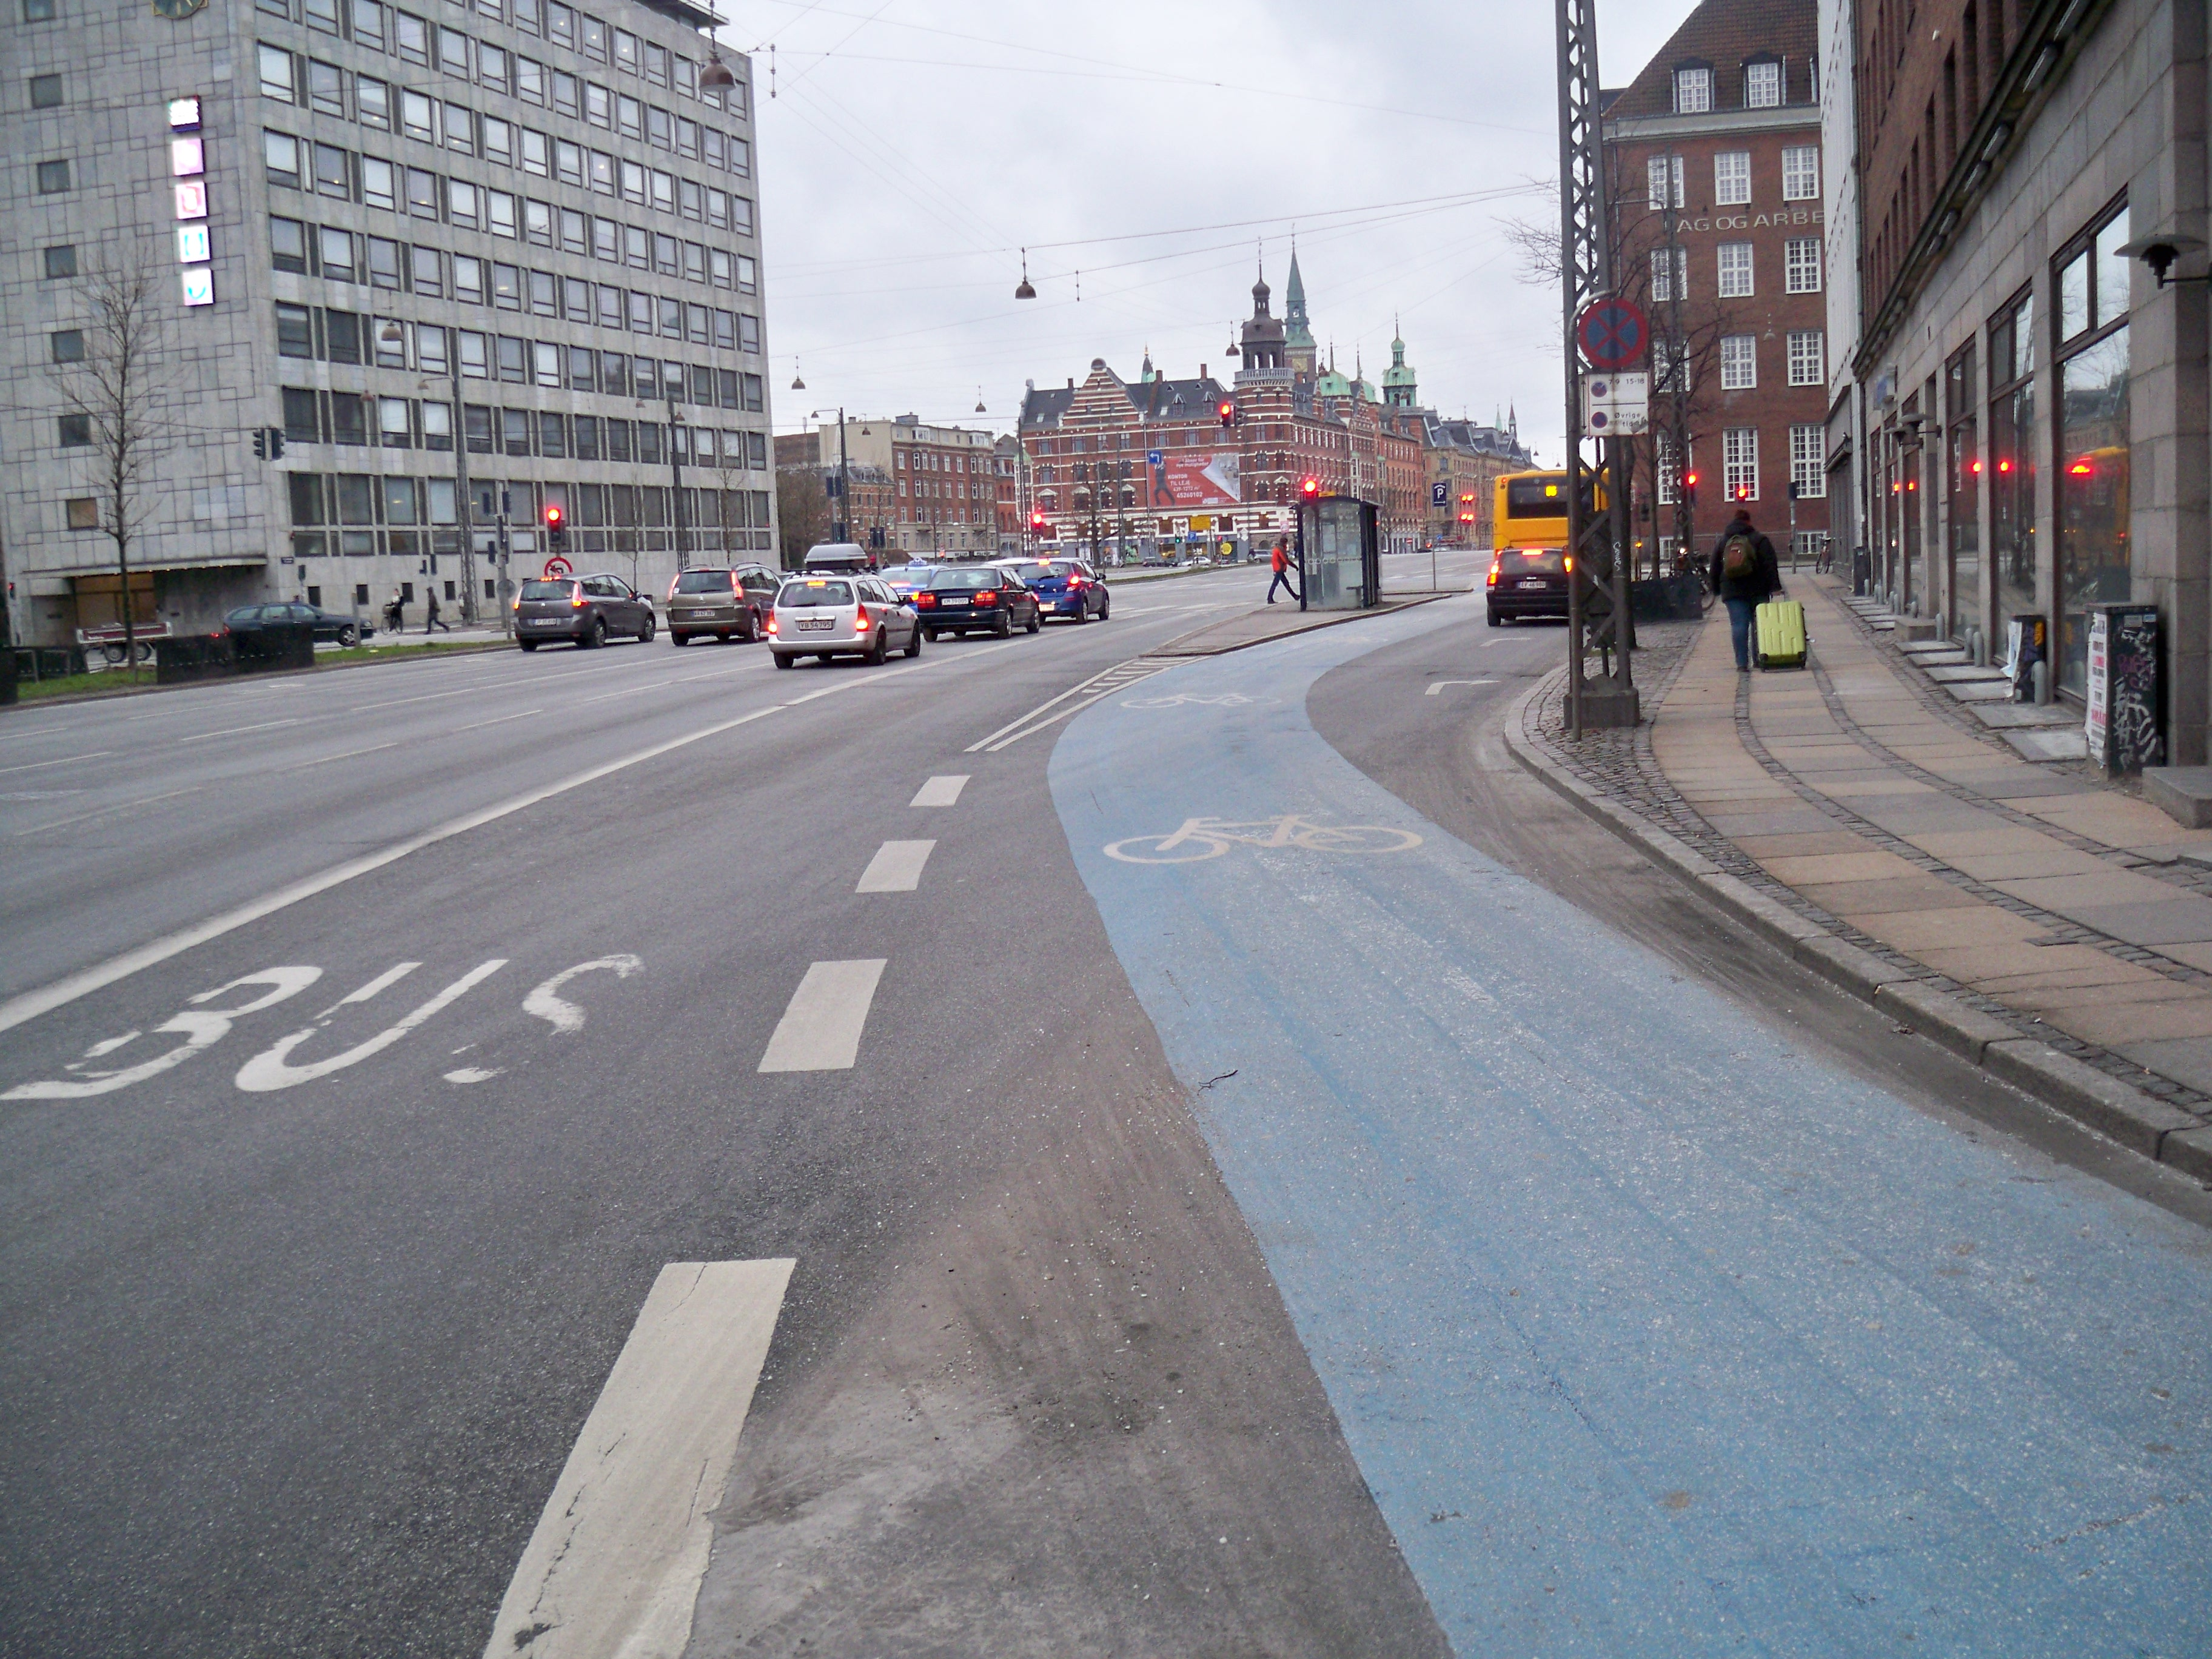 Bus lane and bike lane